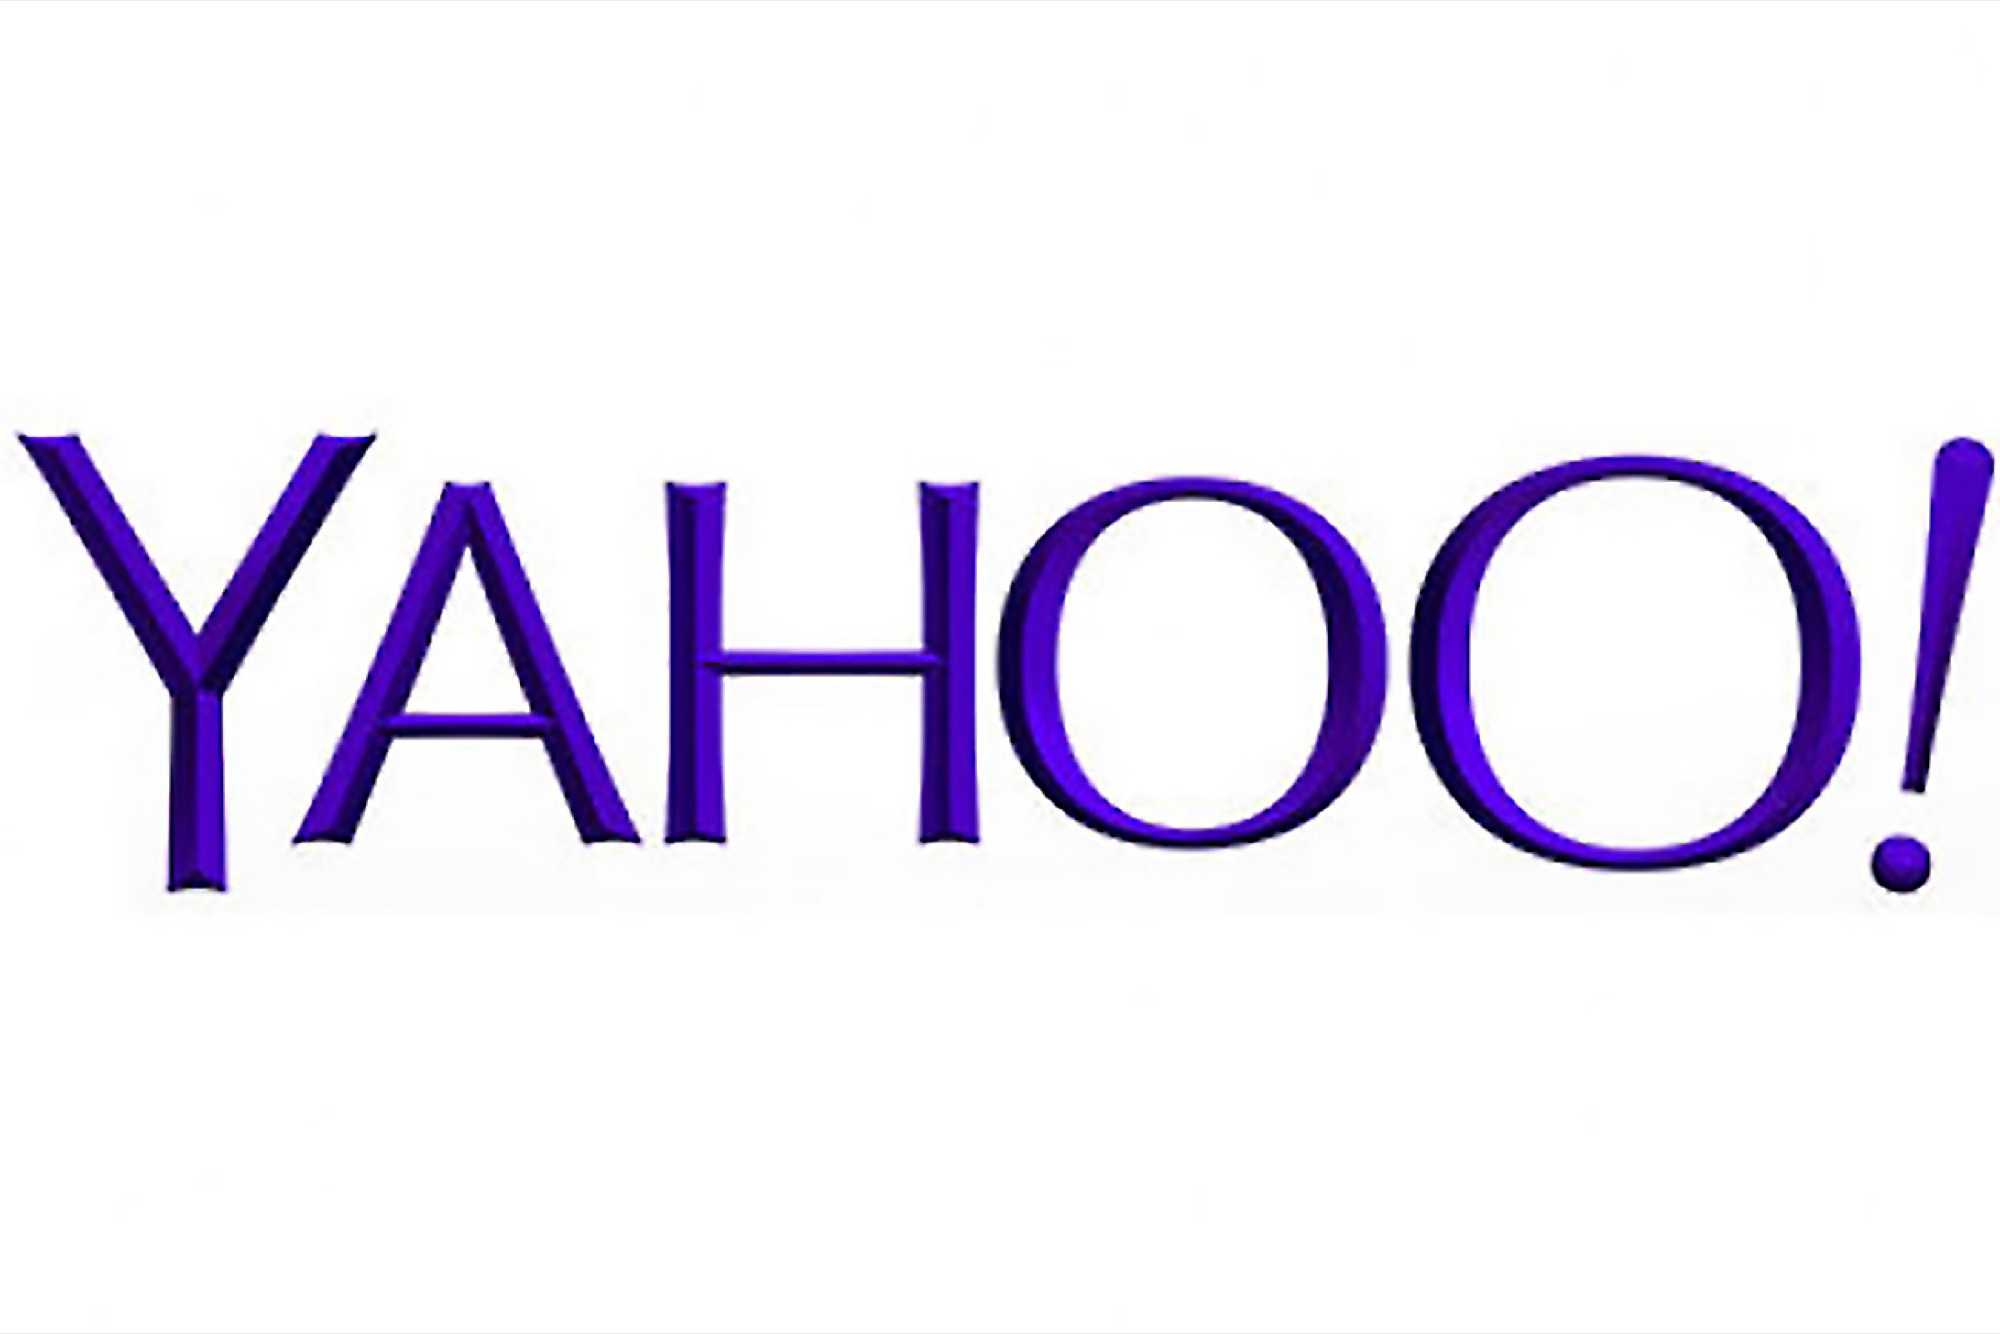 Yahoo's New Logo: Great New Look or Another Boring Design?